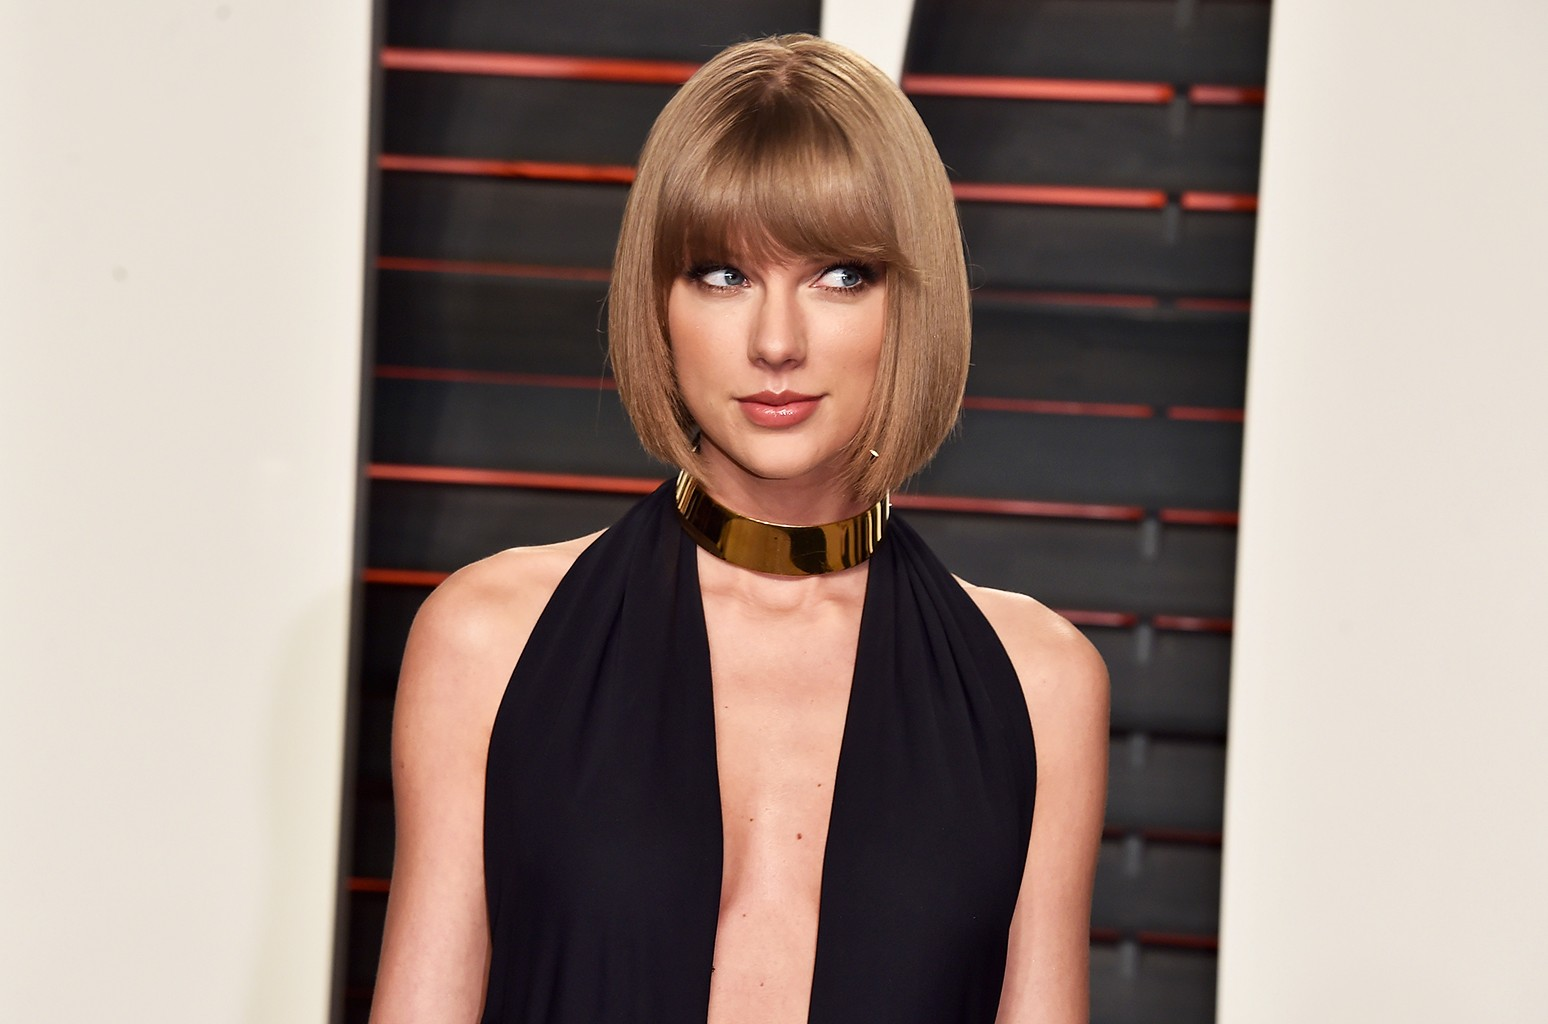 Taylor Swift attends the 2016 Vanity Fair Oscar Party